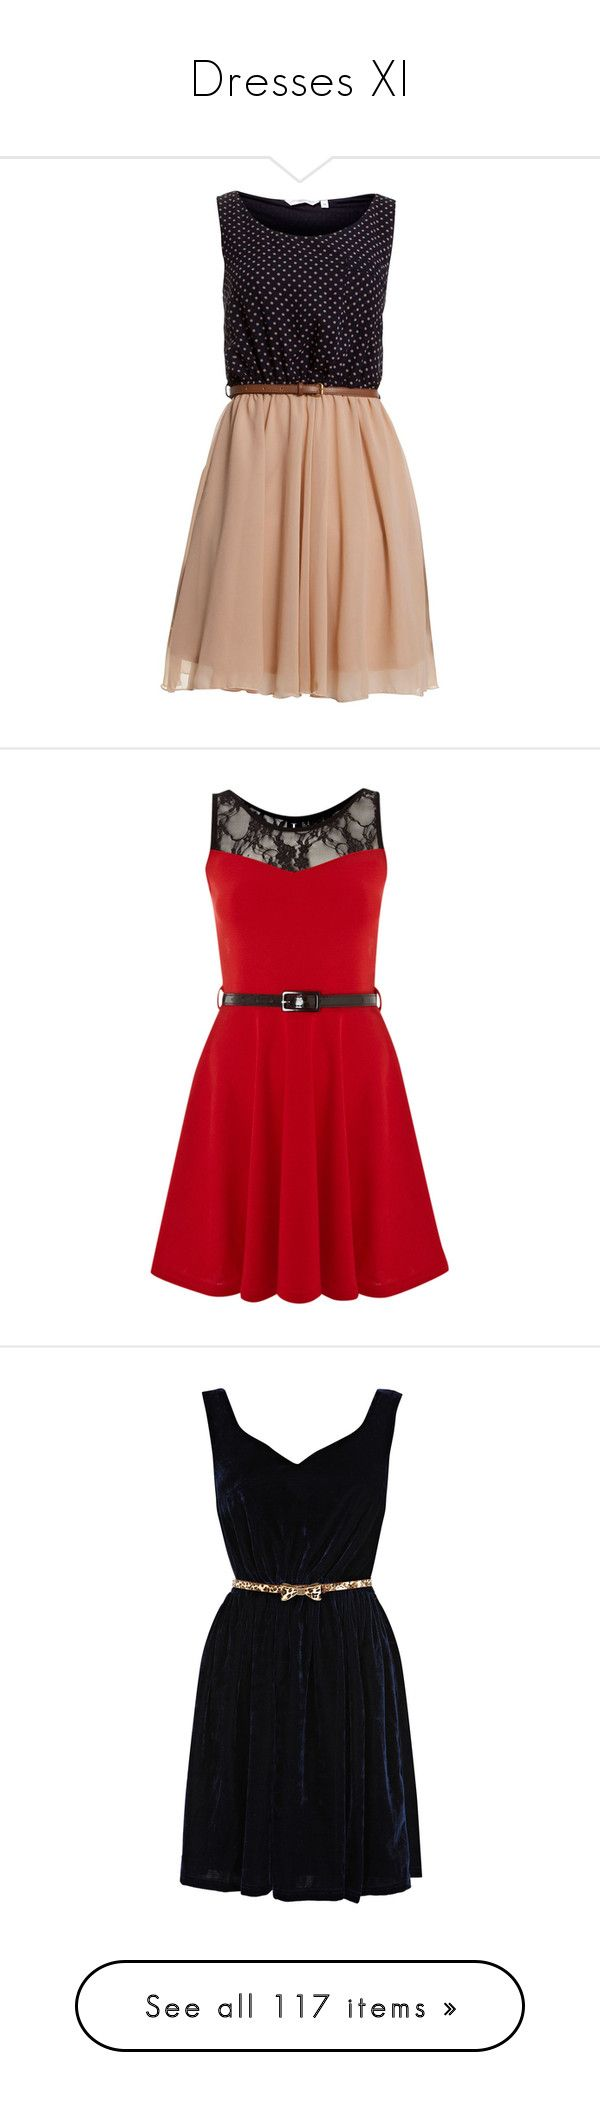 """Dresses XI"" by lucyheartyui on Polyvore featuring dresses, vestidos, robes, see through dress, going out dresses, night out dresses, sheer party dresses, navy polka dot dress, red i women"